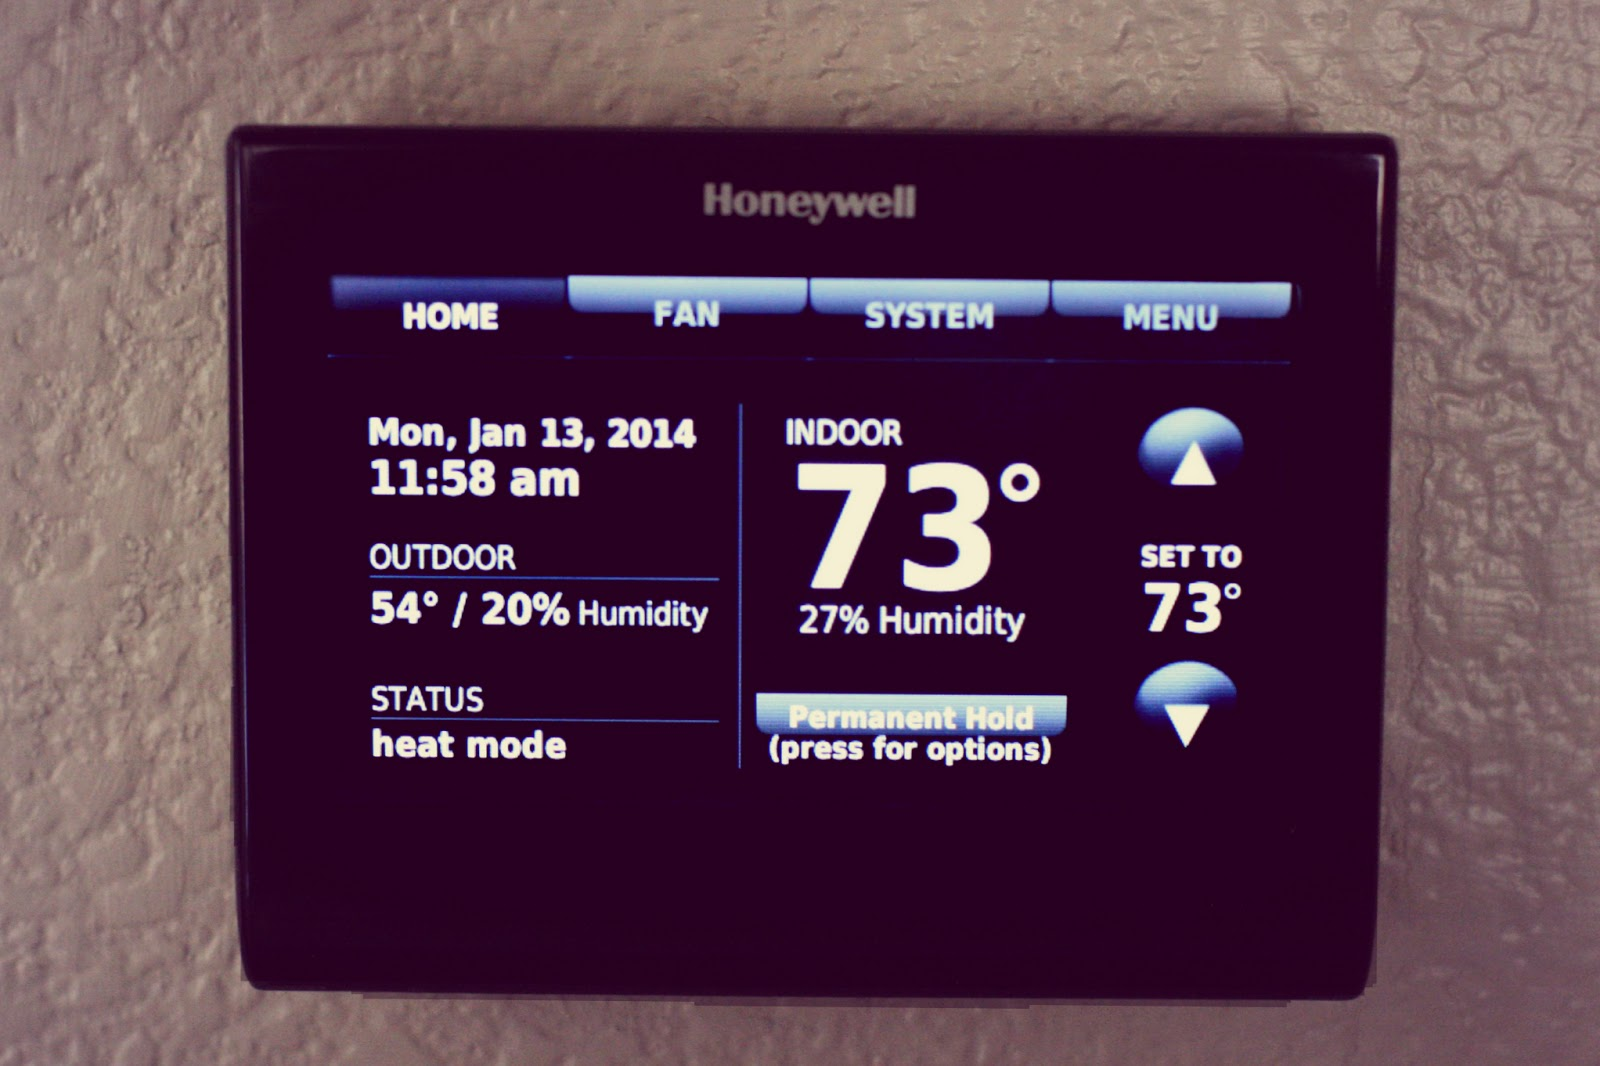 Honeywell RTH6580WF Wi-Fi Thermostat Review 5 Best WIFI